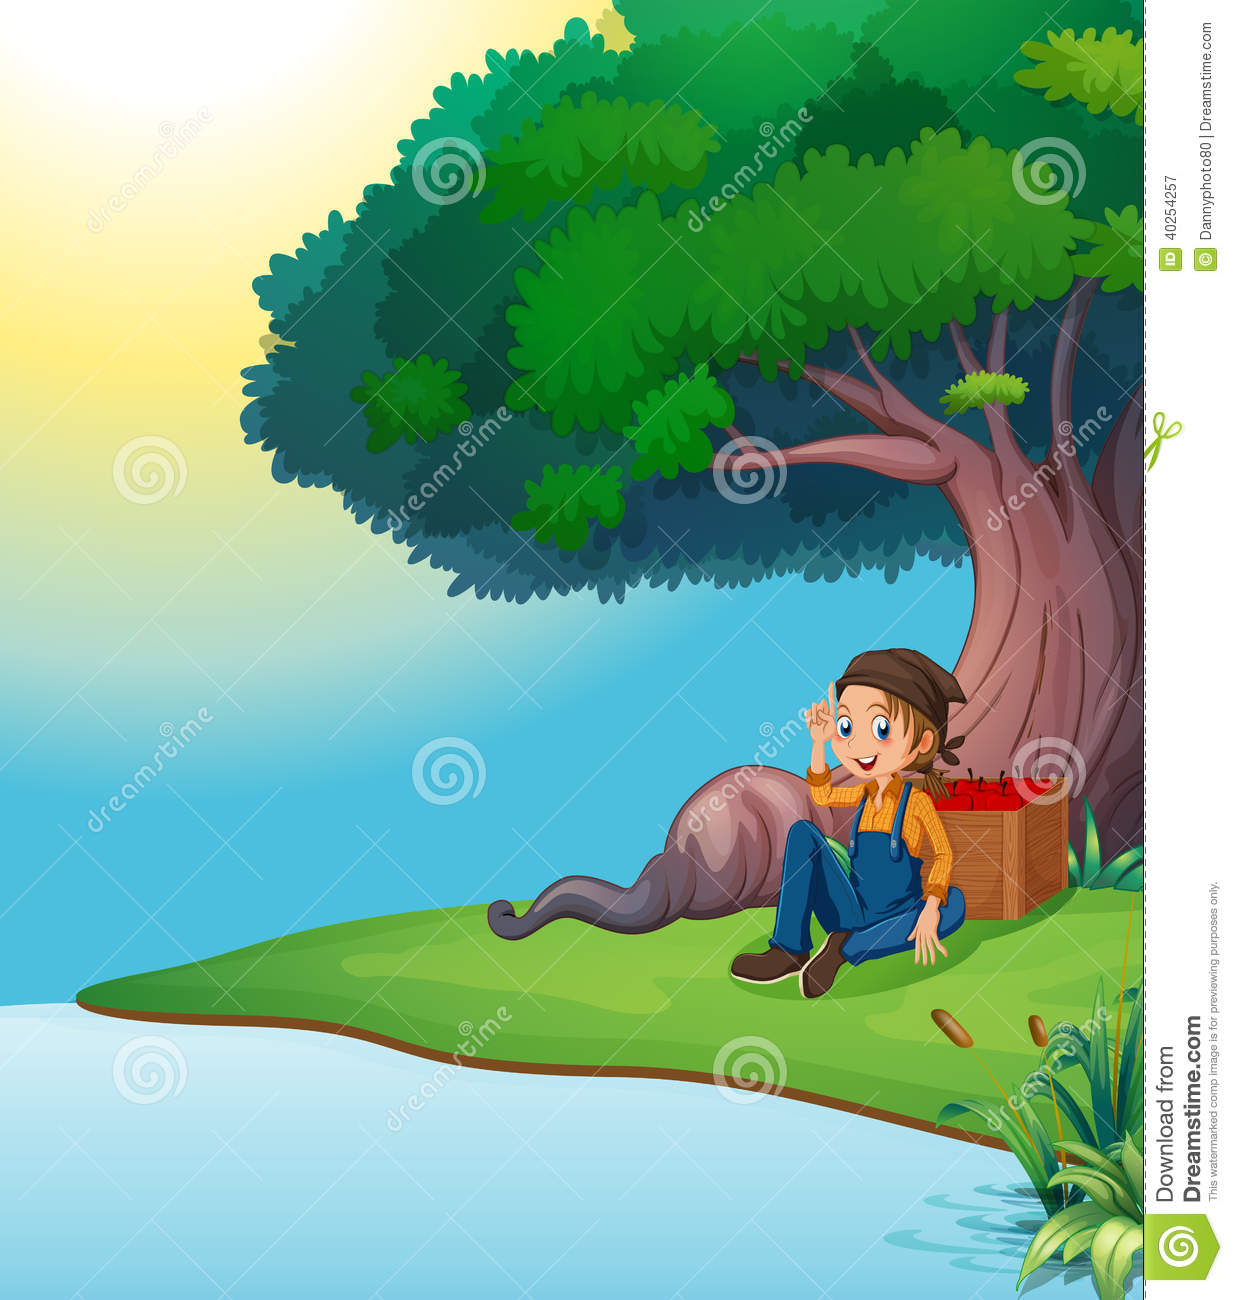 A Young Boy Relaxing Under The Tree Cartoon Vector Cartoondealer Com 40254257 Free for commercial use no attribution required high quality images. cartoondealer com